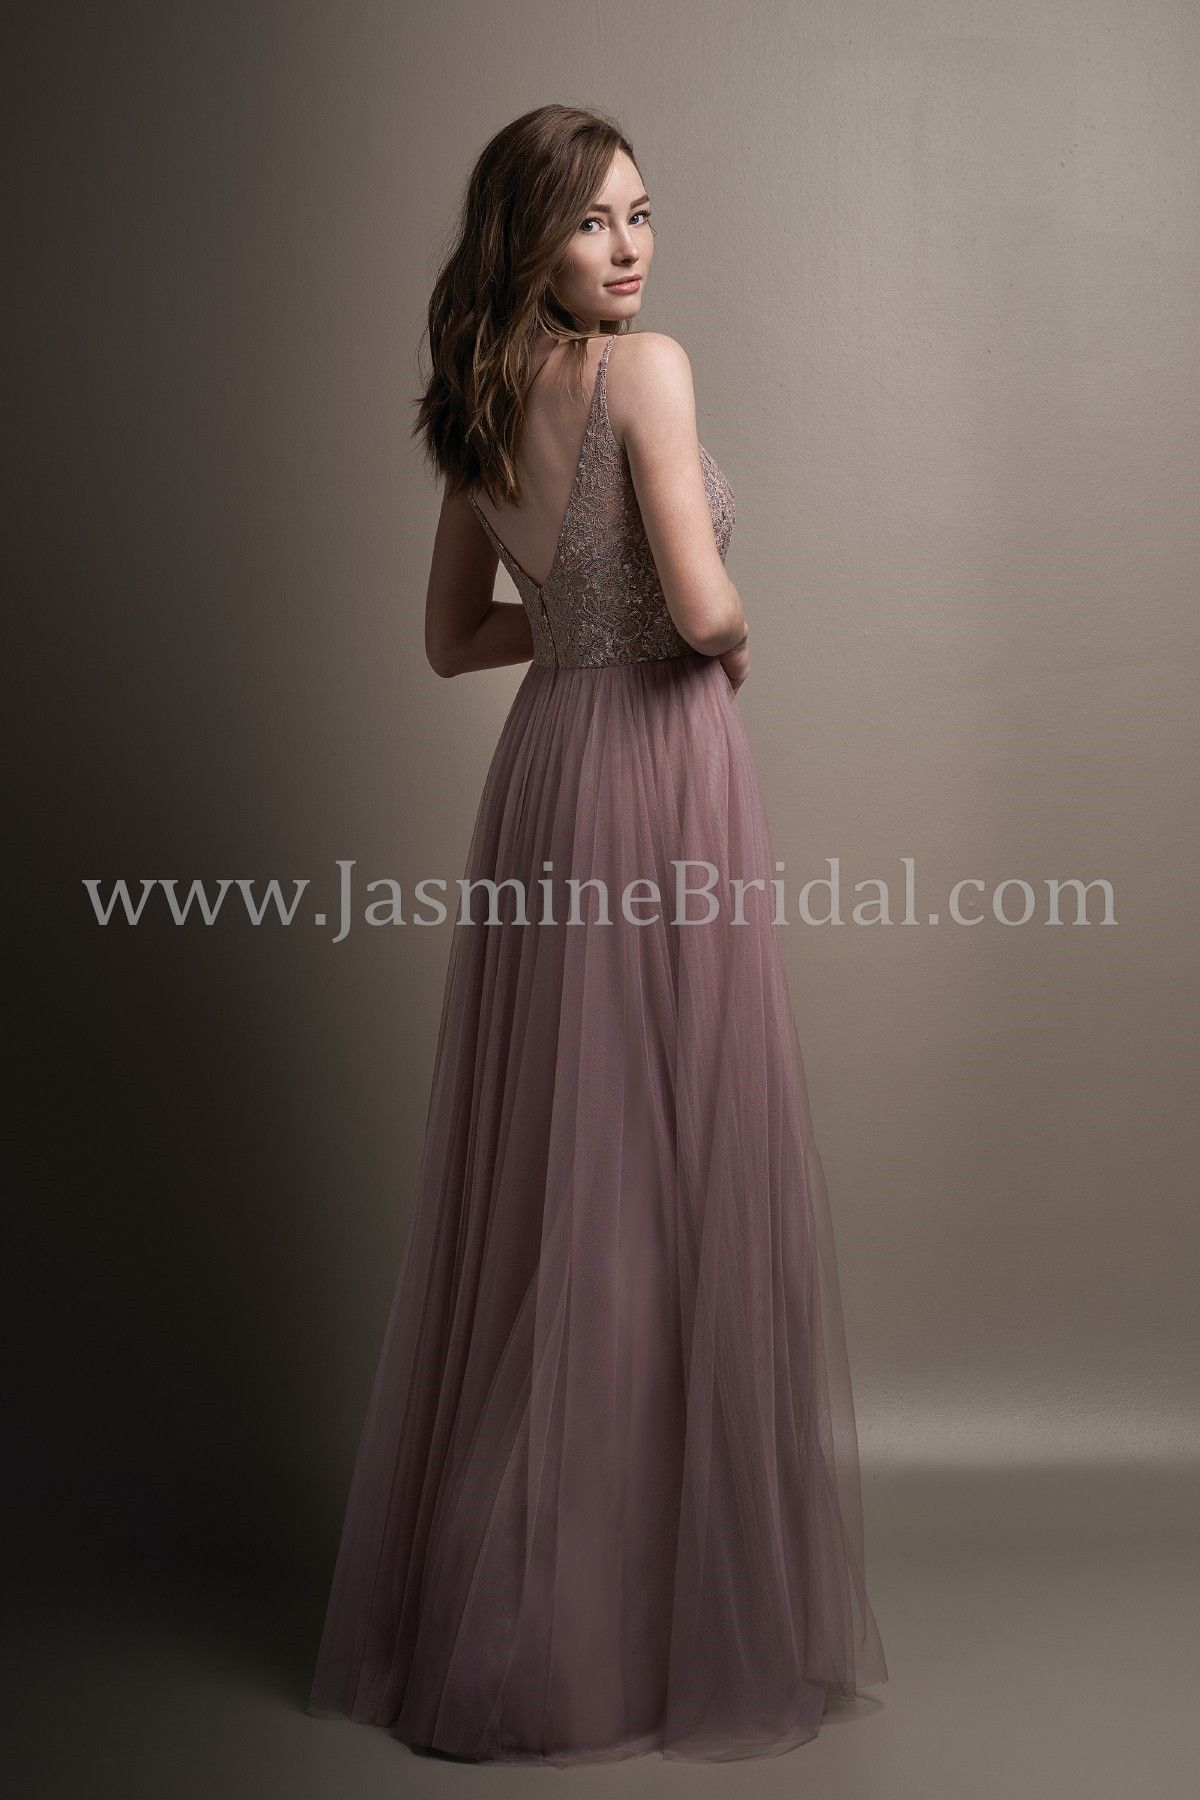 One side strap wedding dress  Jasmine Bridal is home to  separate designer wedding labels as well